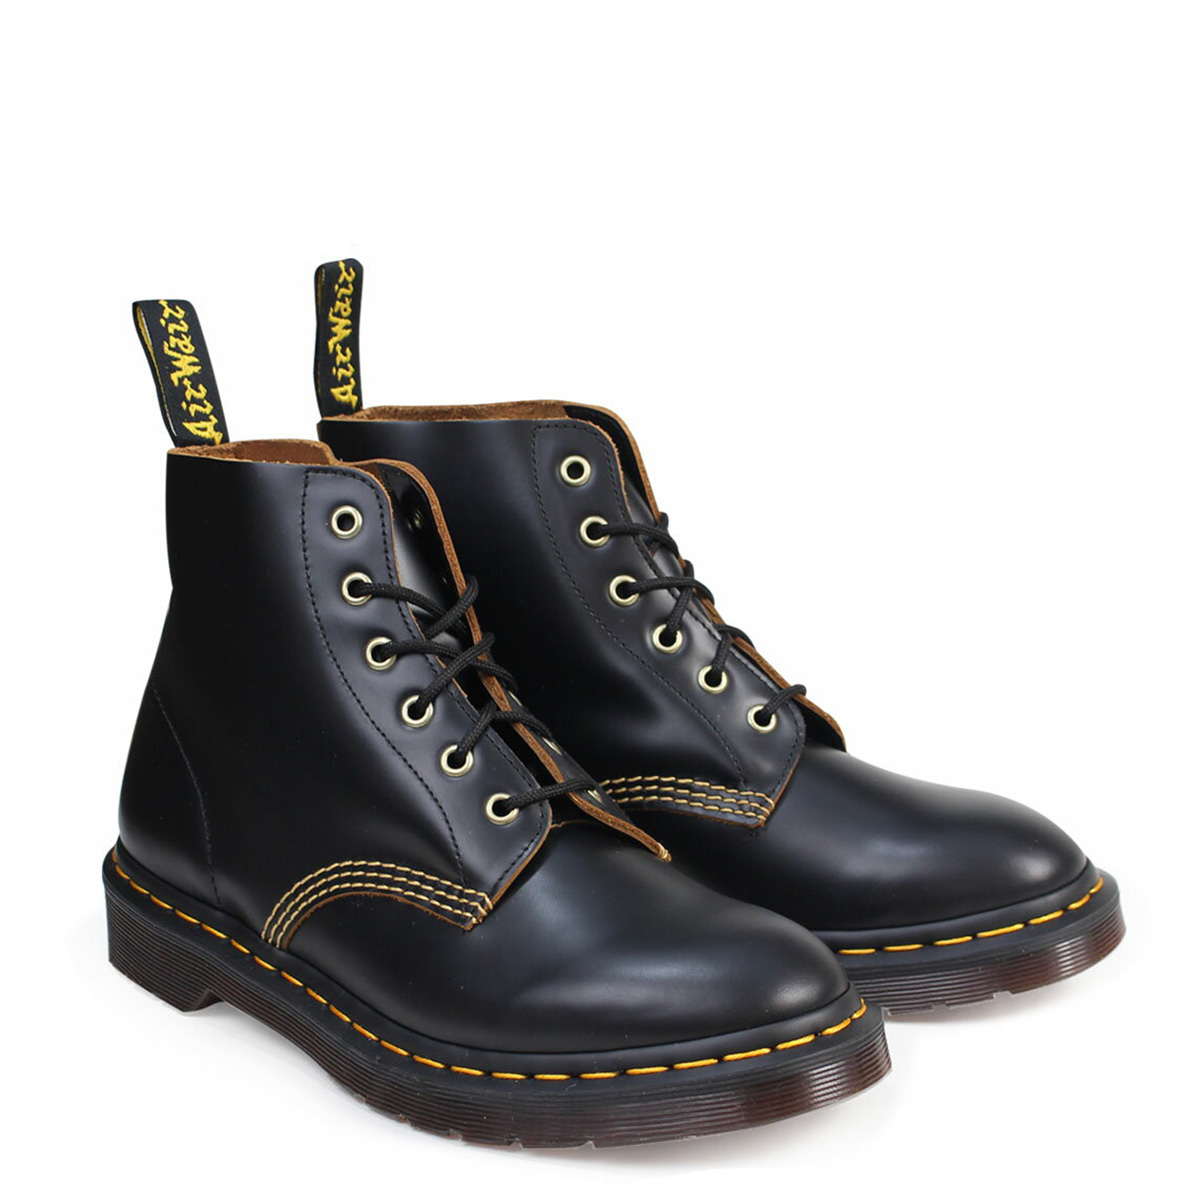 ad2d78e2ffd Dr.Martens ARCHIVE 101 6EYE BOOT doctor Martin 6 hall men gap Dis boots  R22701001 black [1810]